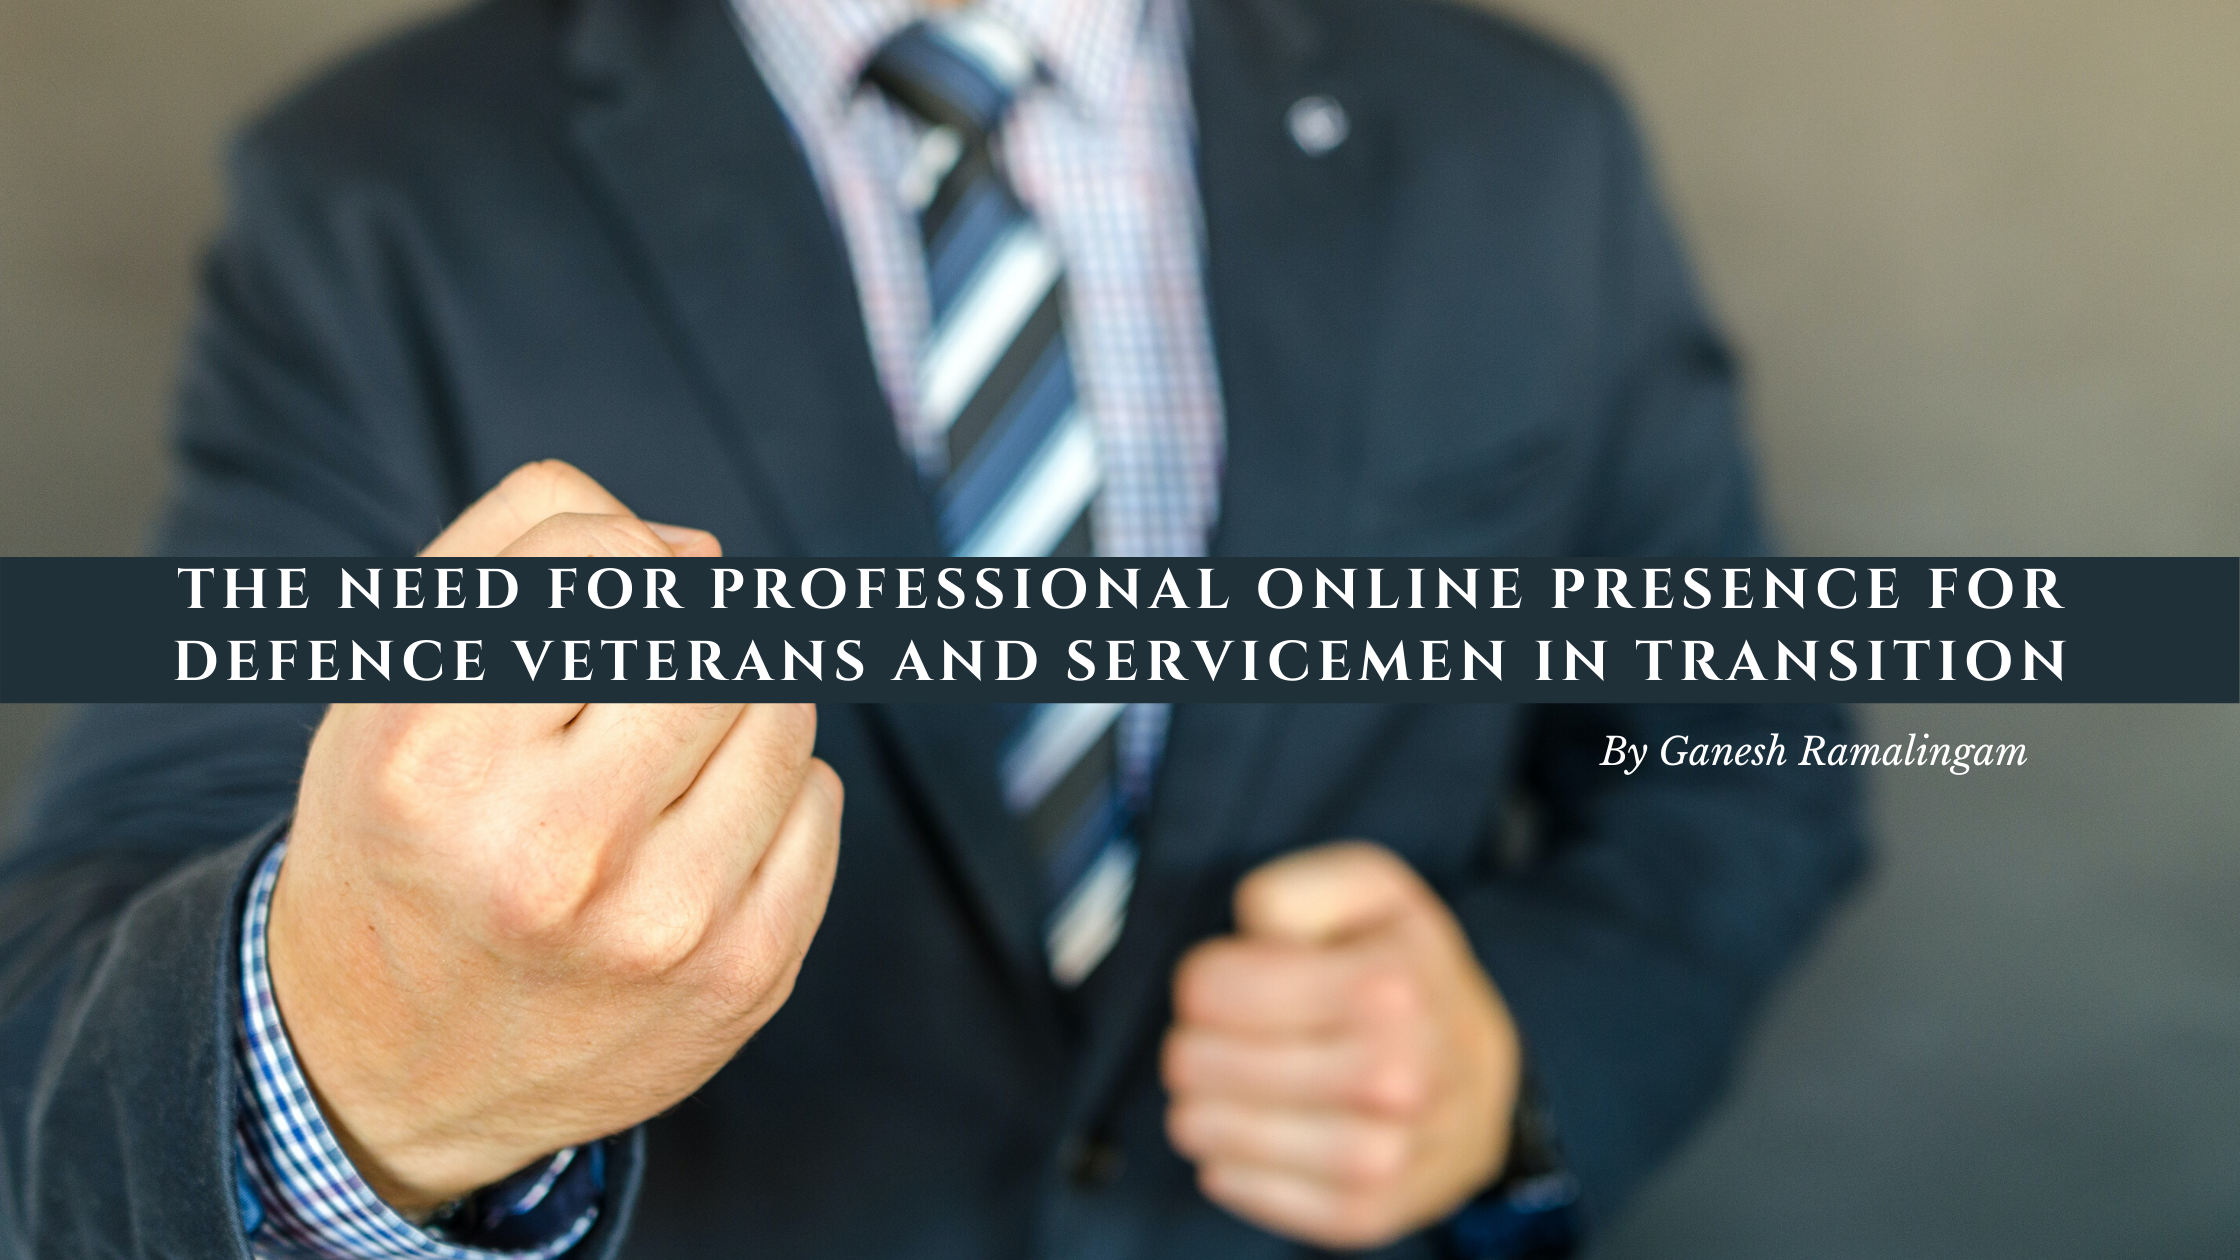 The Need for Professional Online Presence for Defence Veterans and Servicemen in Transition